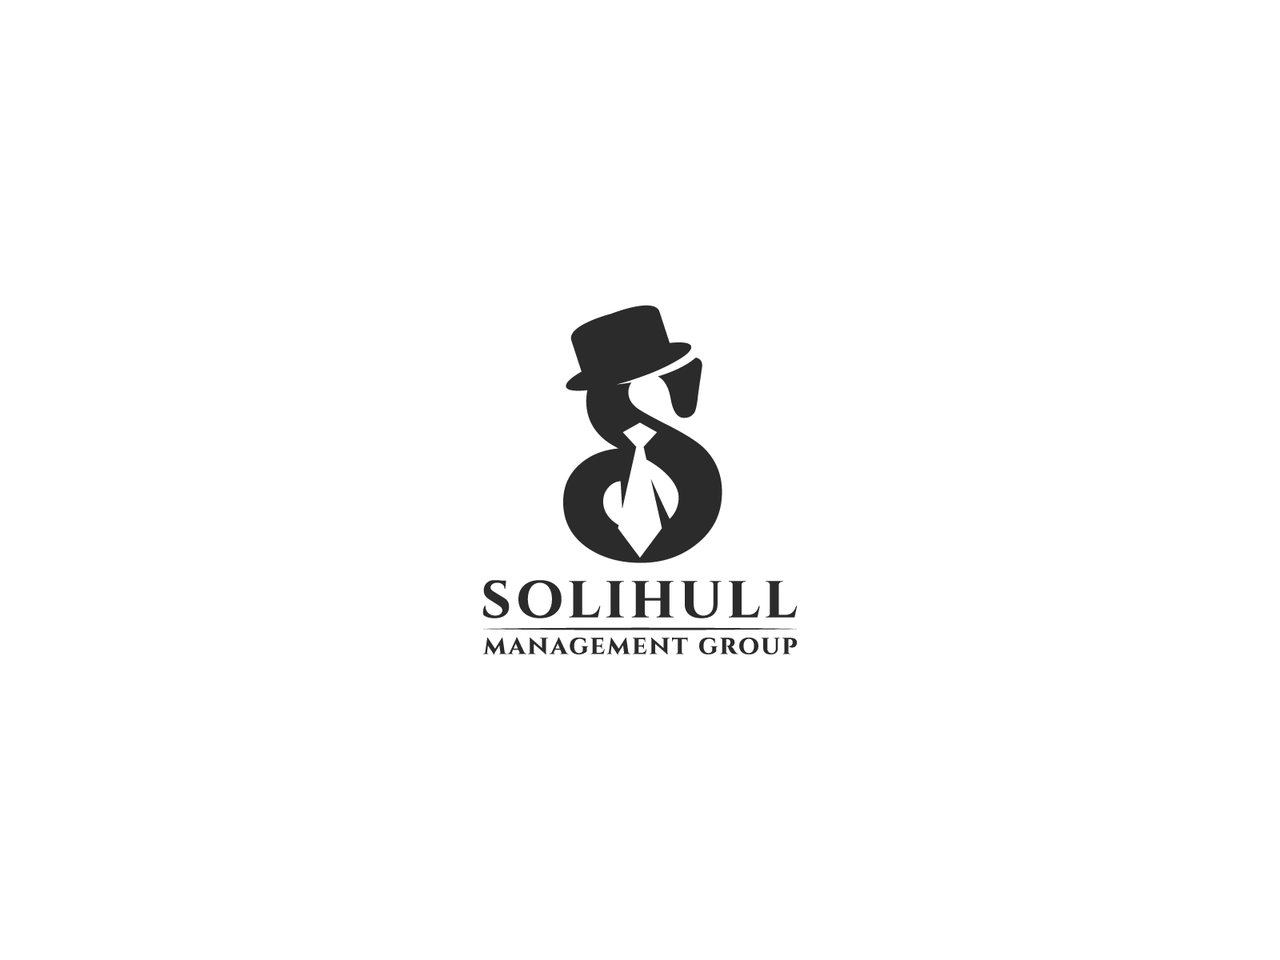 S with hat and tie logo